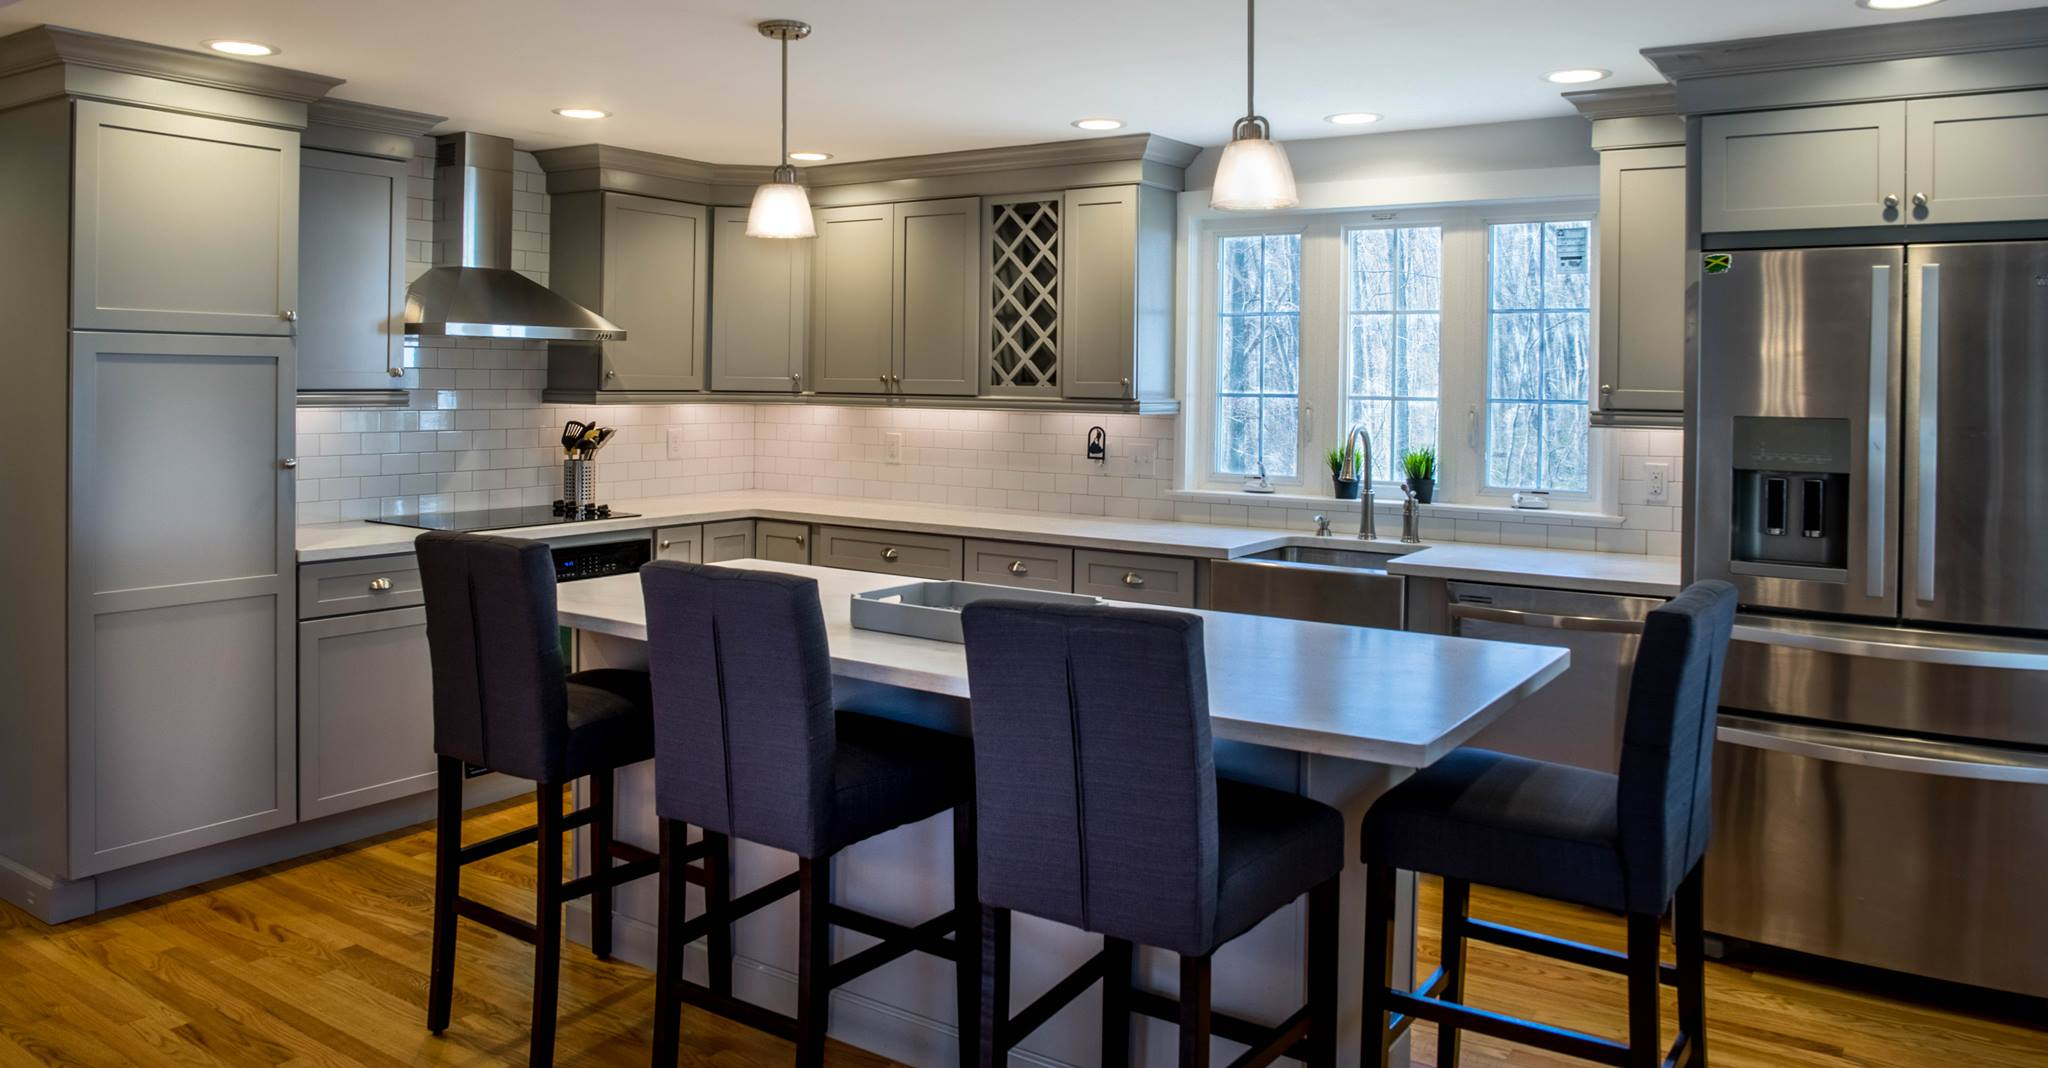 Connecticut's Top Rated Local® Home Contractors Award Winner: J&J Complete Home